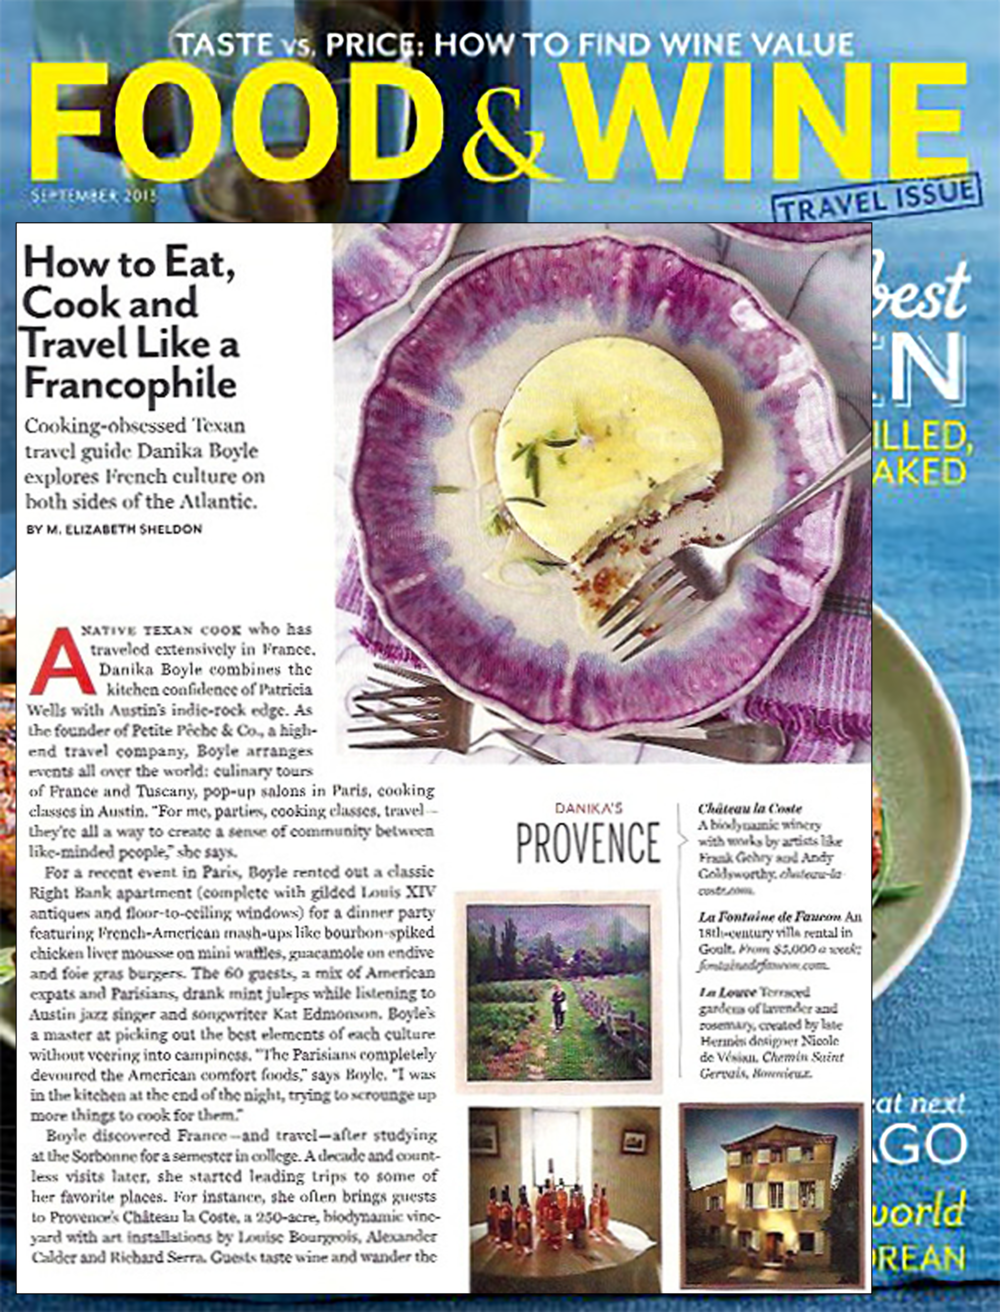 Petite Peche & Co. in Food & Wine, September 2013